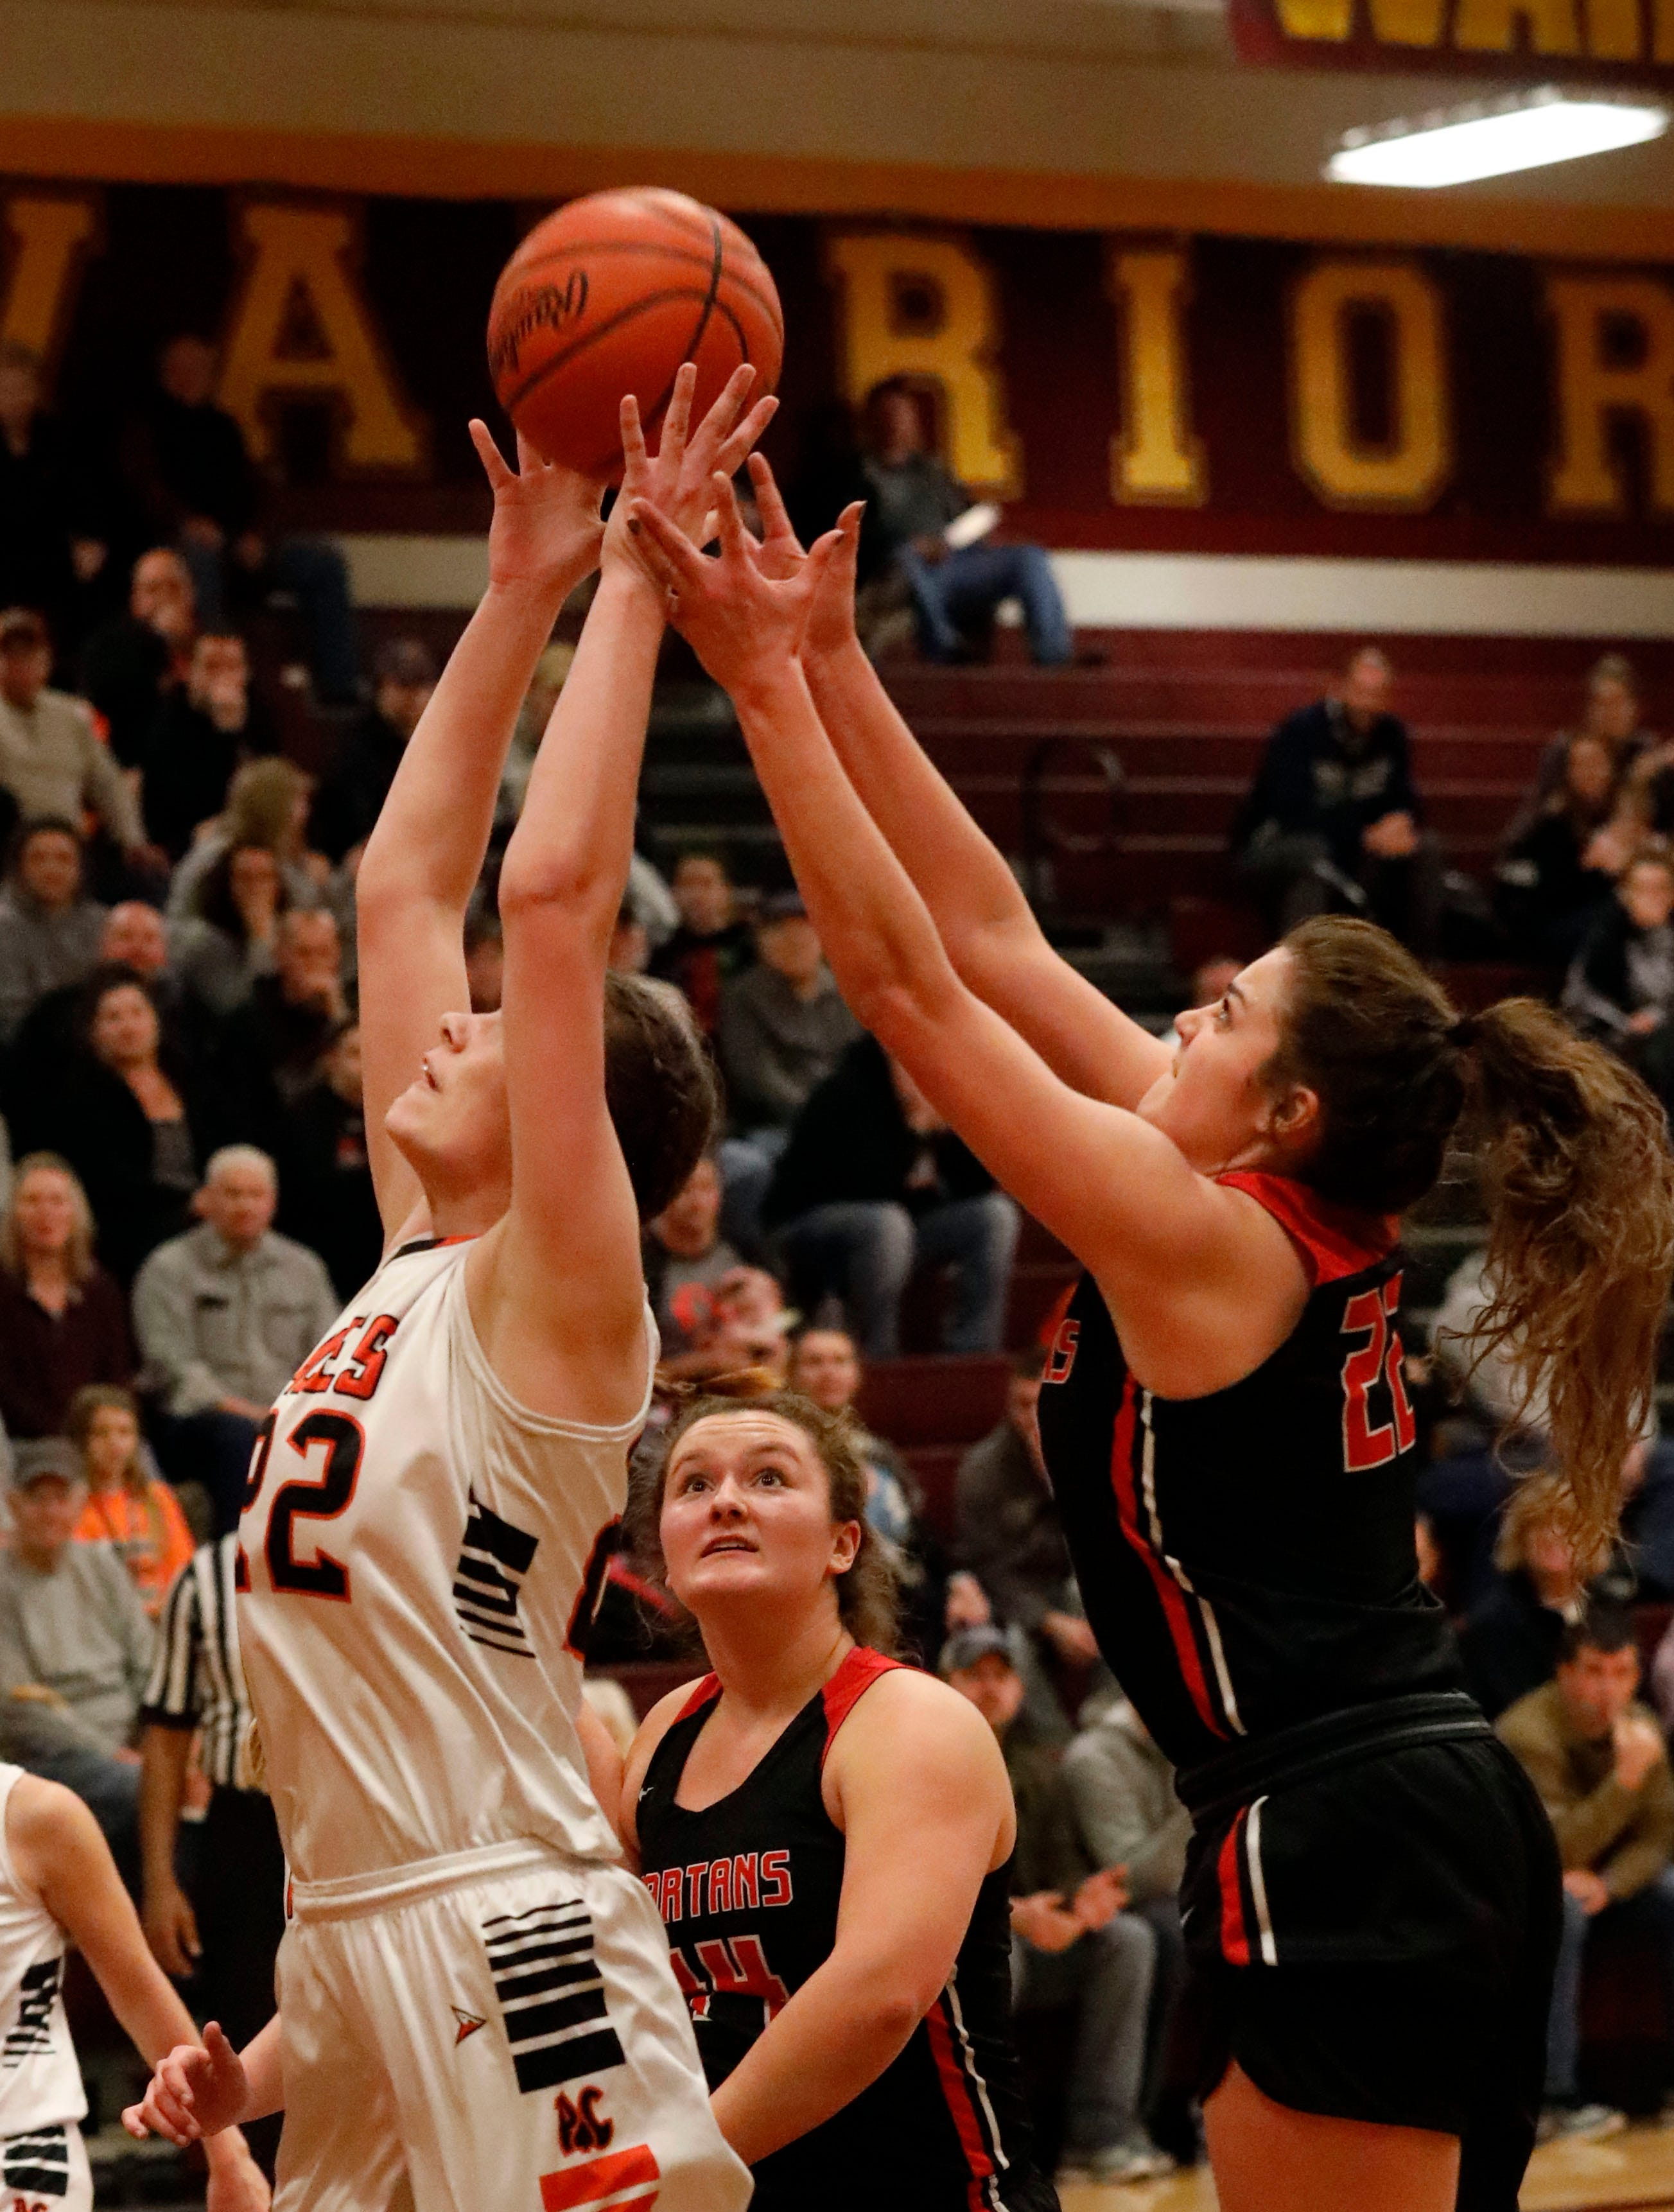 Amanda-Clearcreek's Carlie Craycraft, left, and Pleasant's Katelynn Connell fight for a rebound during Tuesday night's game, Feb. 26, 2019, at Westerville North High School in Westerville. The Aces won the game 41-37.